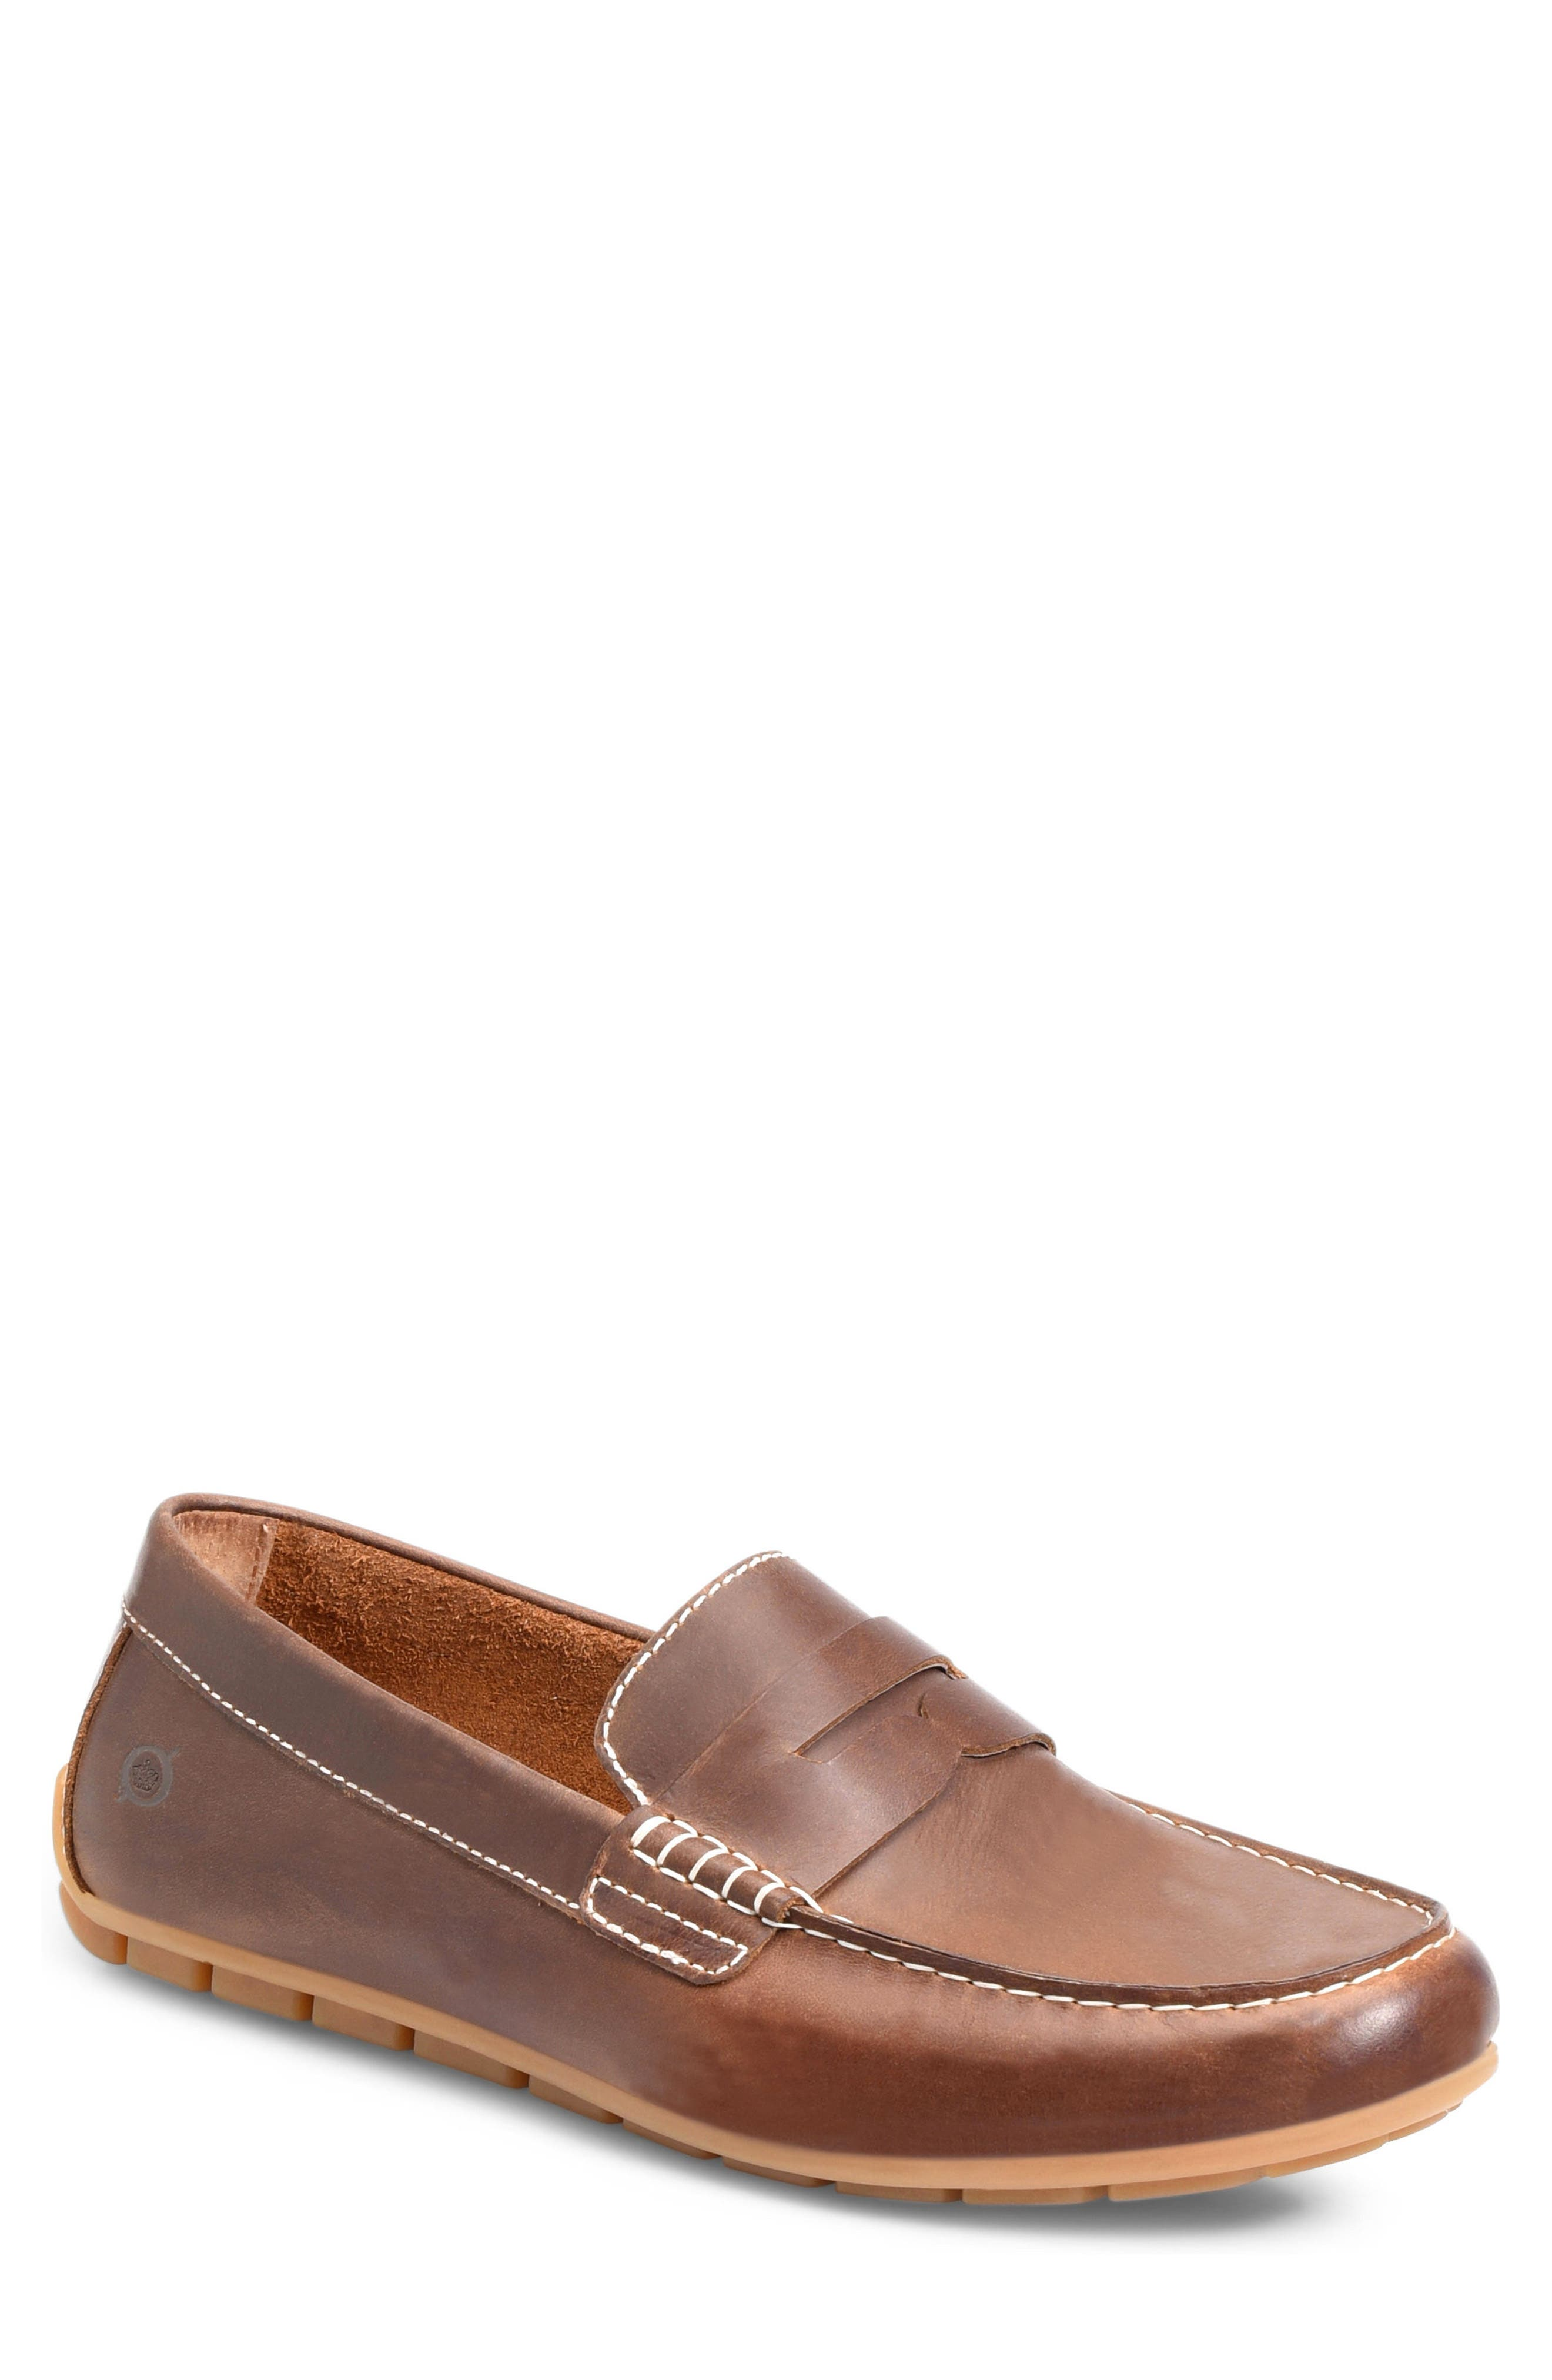 Andes Driving Shoe,                         Main,                         color, DARK BROWN